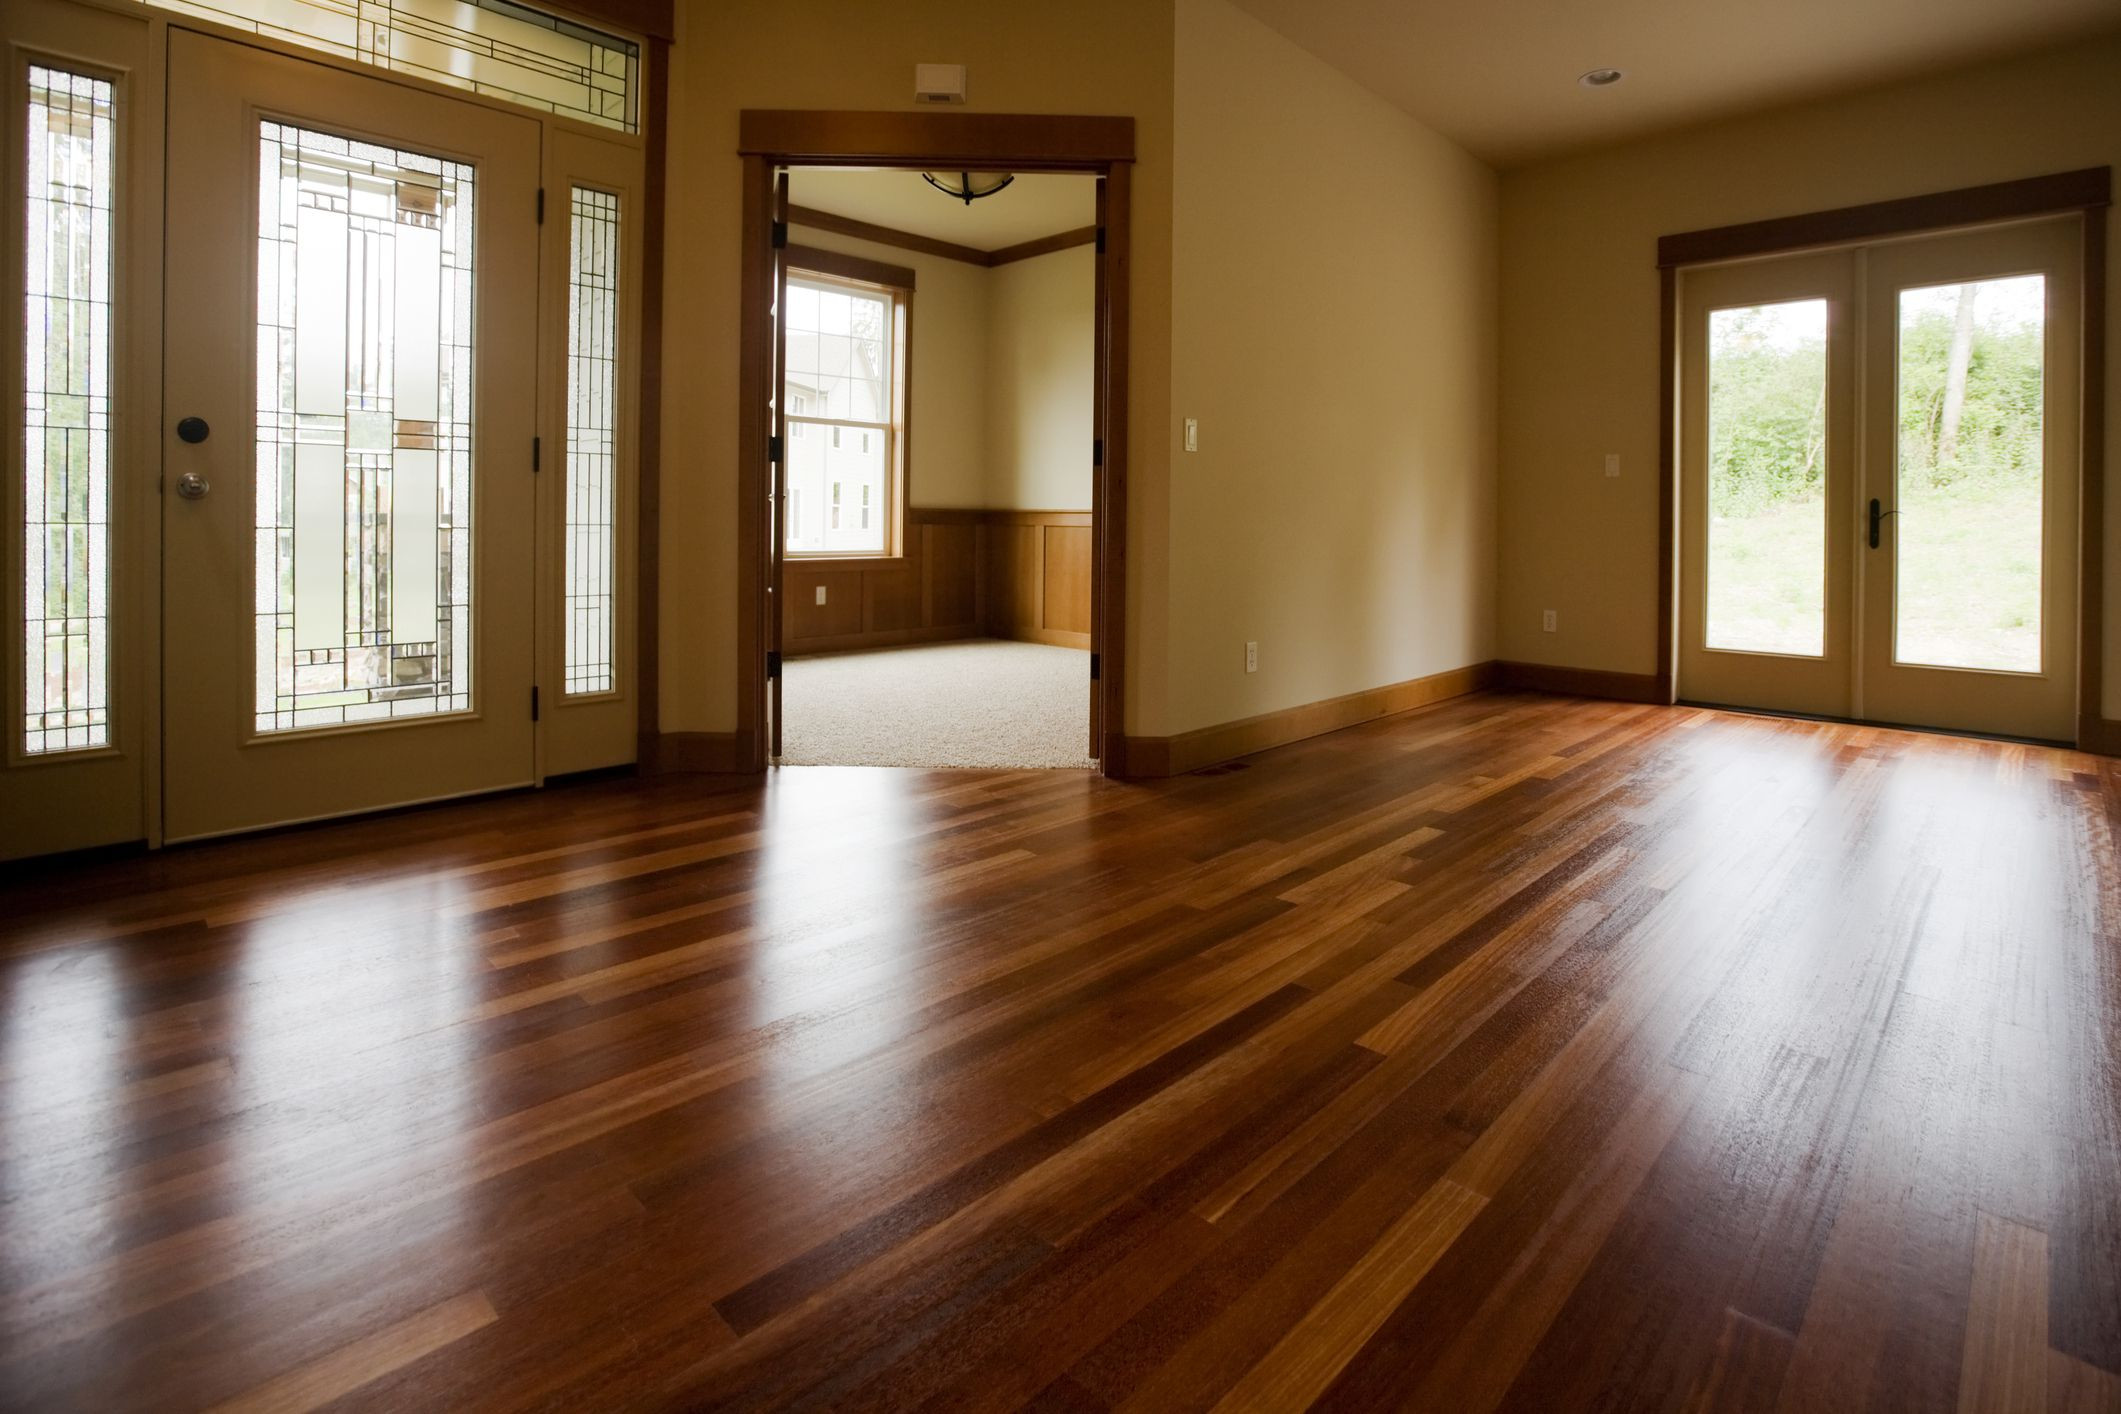 bruce 3 4 hardwood flooring of types of hardwood flooring buyers guide for gettyimages 157332889 5886d8383df78c2ccd65d4e1